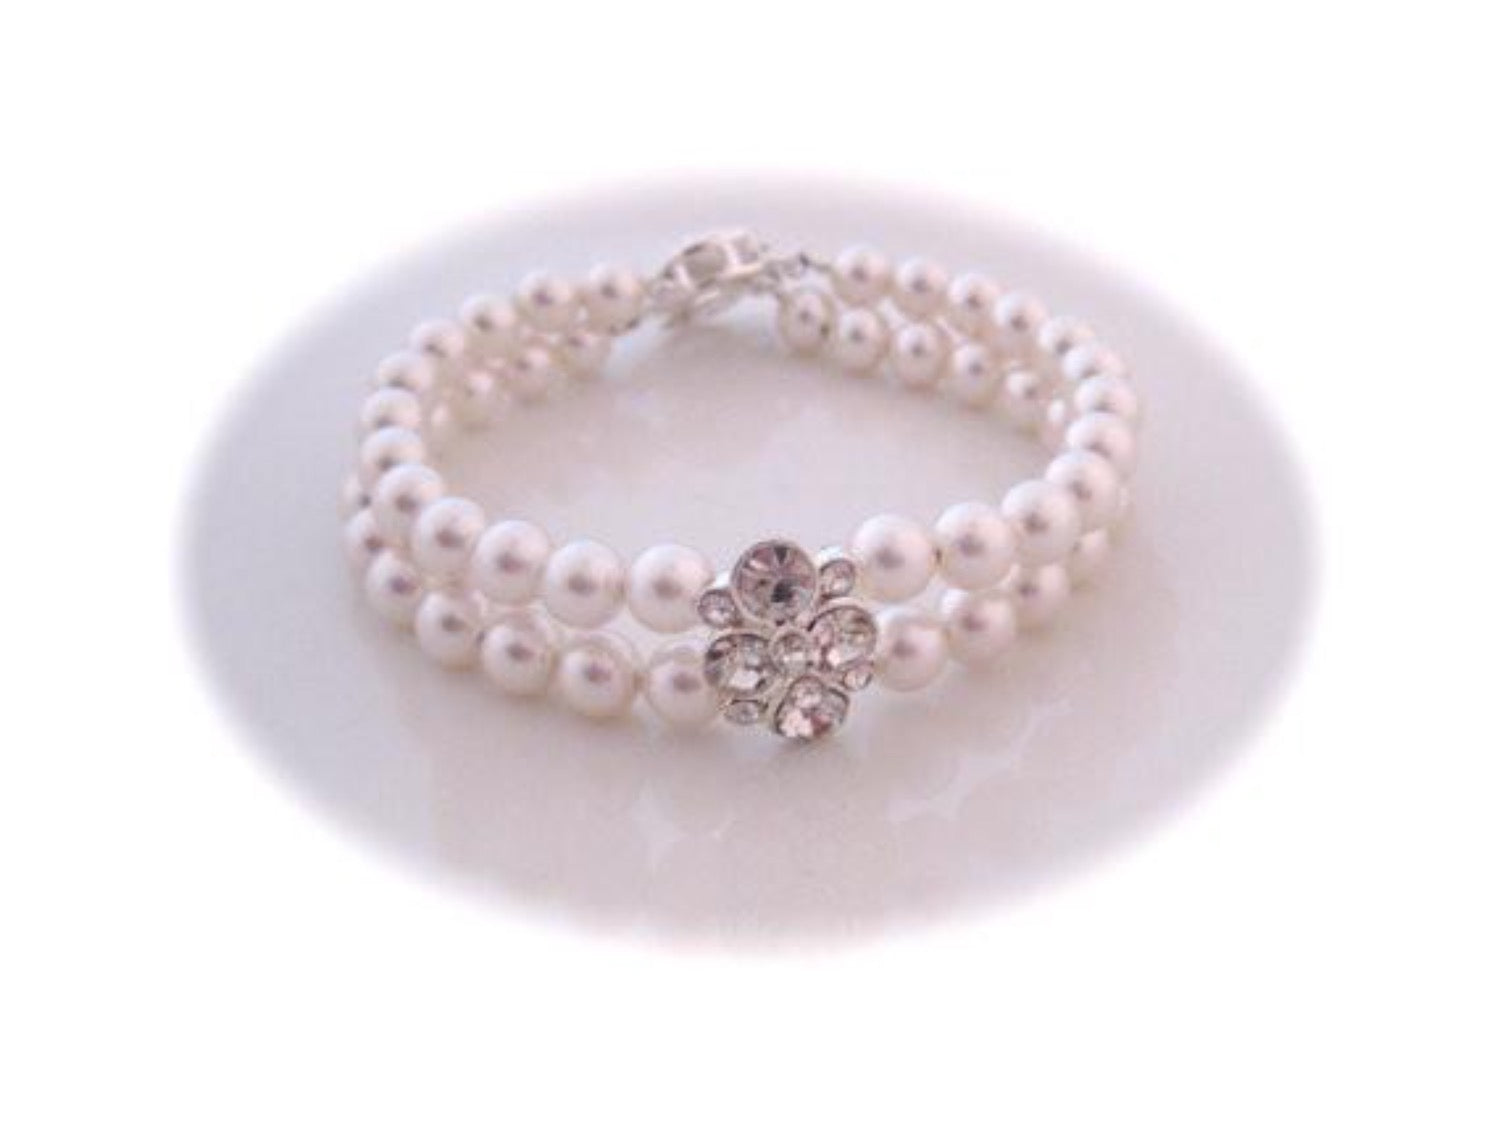 Wedding Jewelry, Pearl bracelet, Cubic zirconia Slider, Silver Filigree Clasp - Clairesbridal - 3